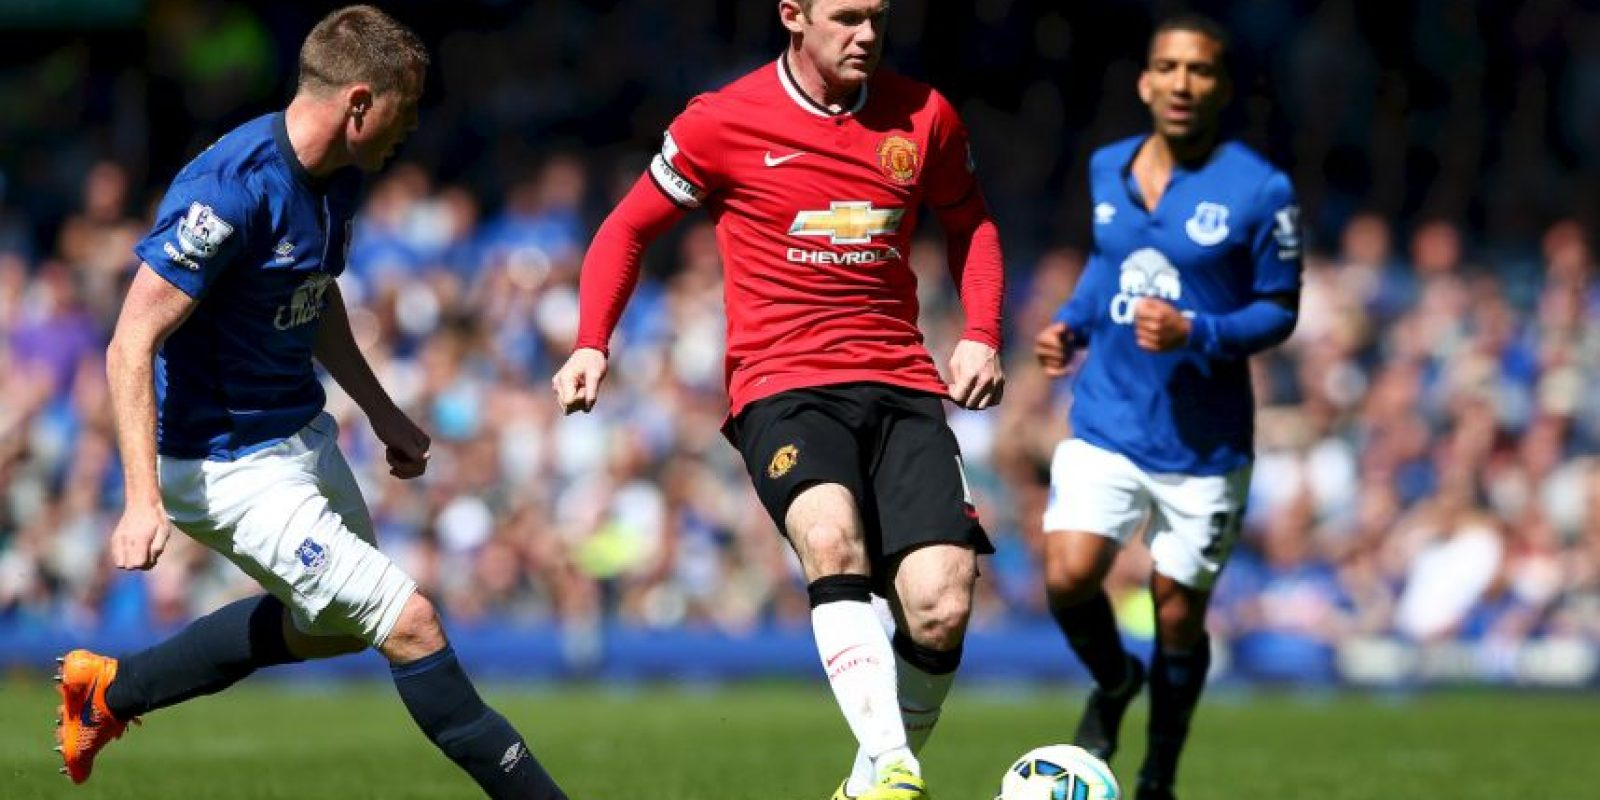 5. Everton vs. Manchester United (Premier League) Foto: Getty Images